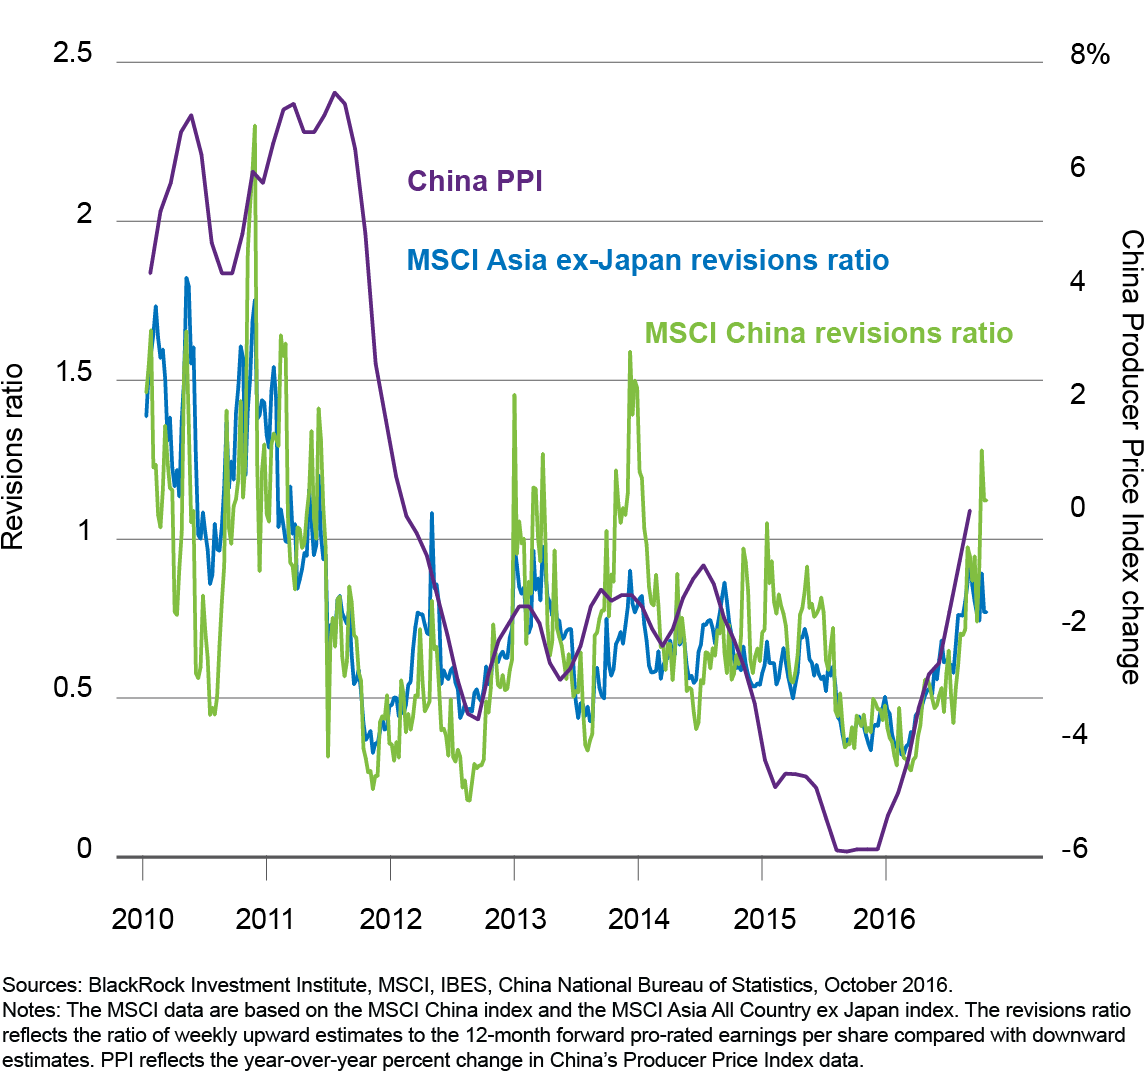 China reflation and Asia earnings revisions